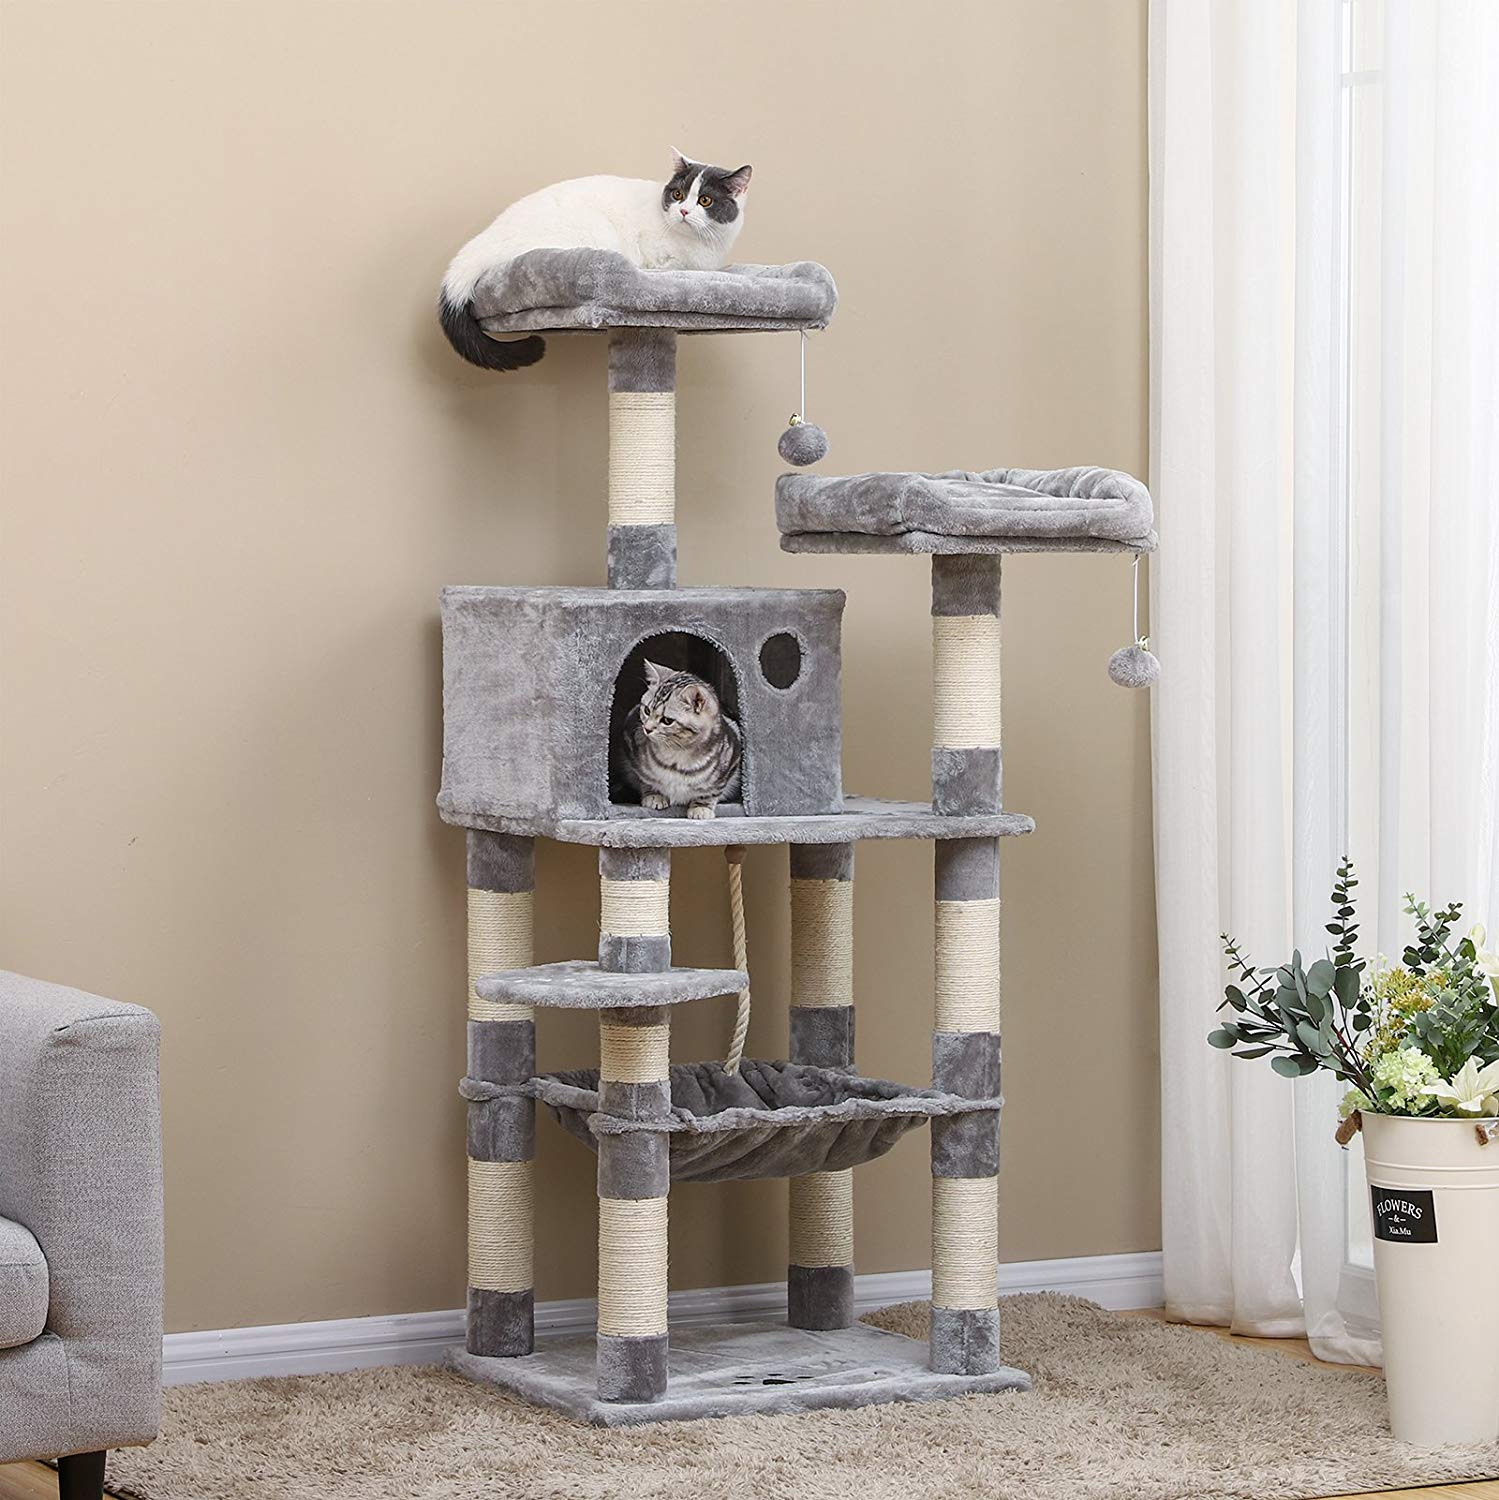 SONGMICS 58 Cat Tree For Large Cats review by www.puppyurl.com